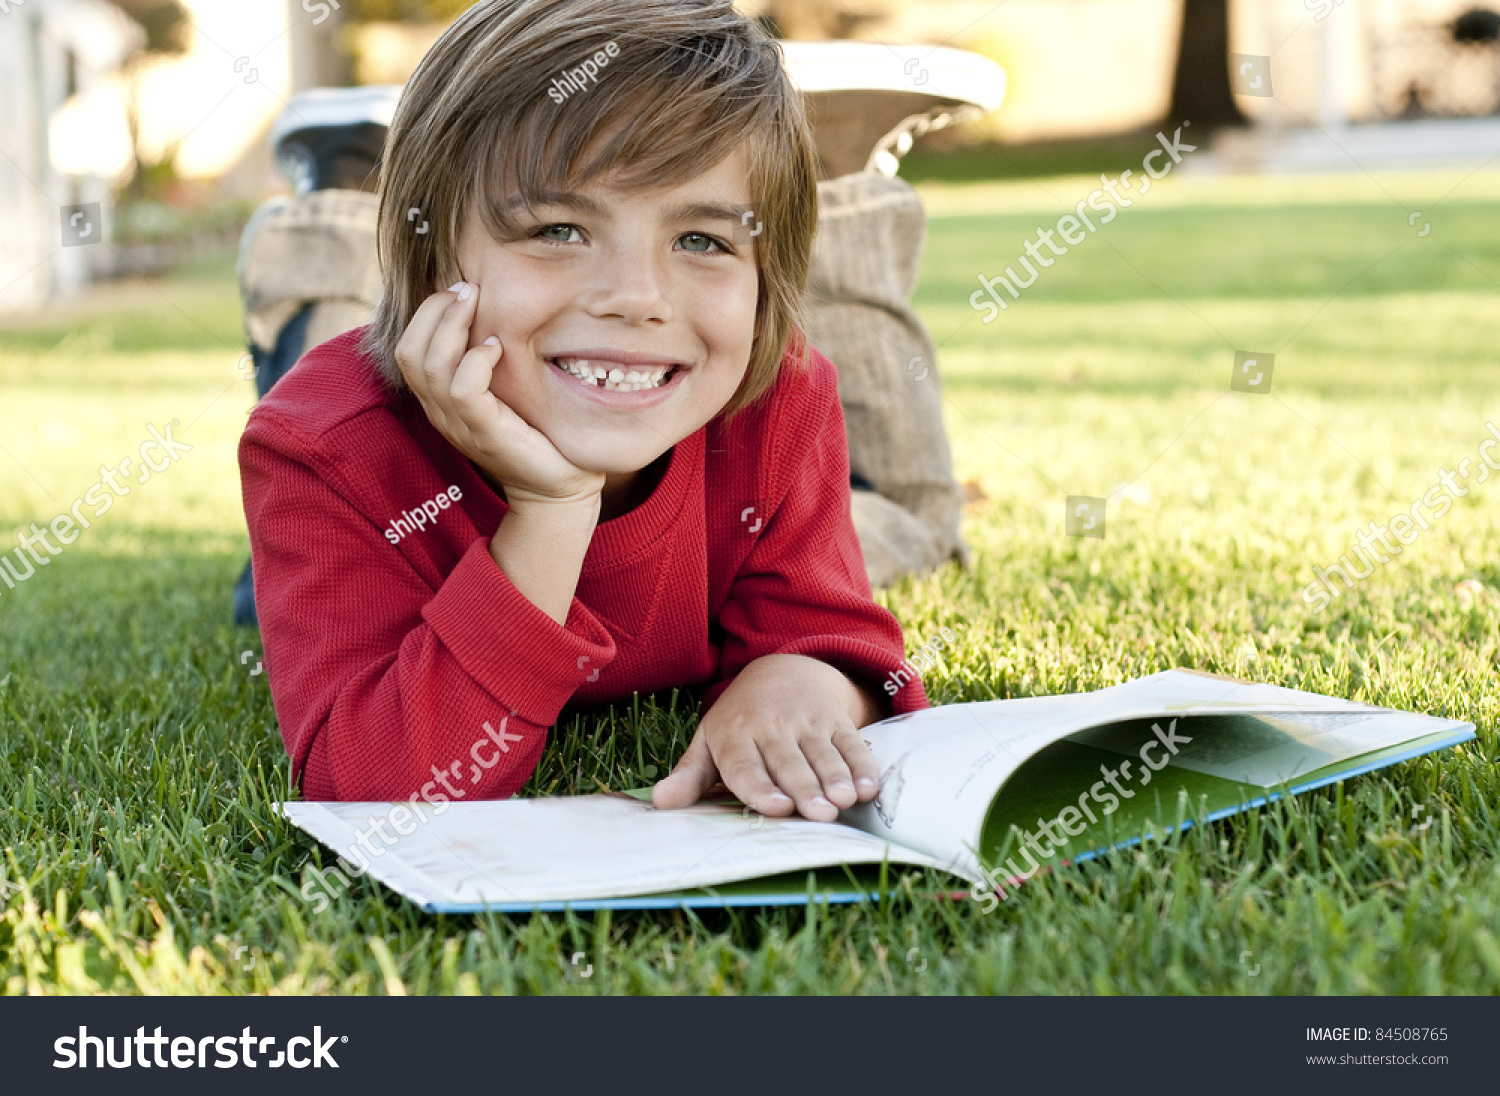 Worksheet Books 7 Year Old very cute 7 year old boy stock photo 84508765 shutterstock lying on the grass reading a kids book